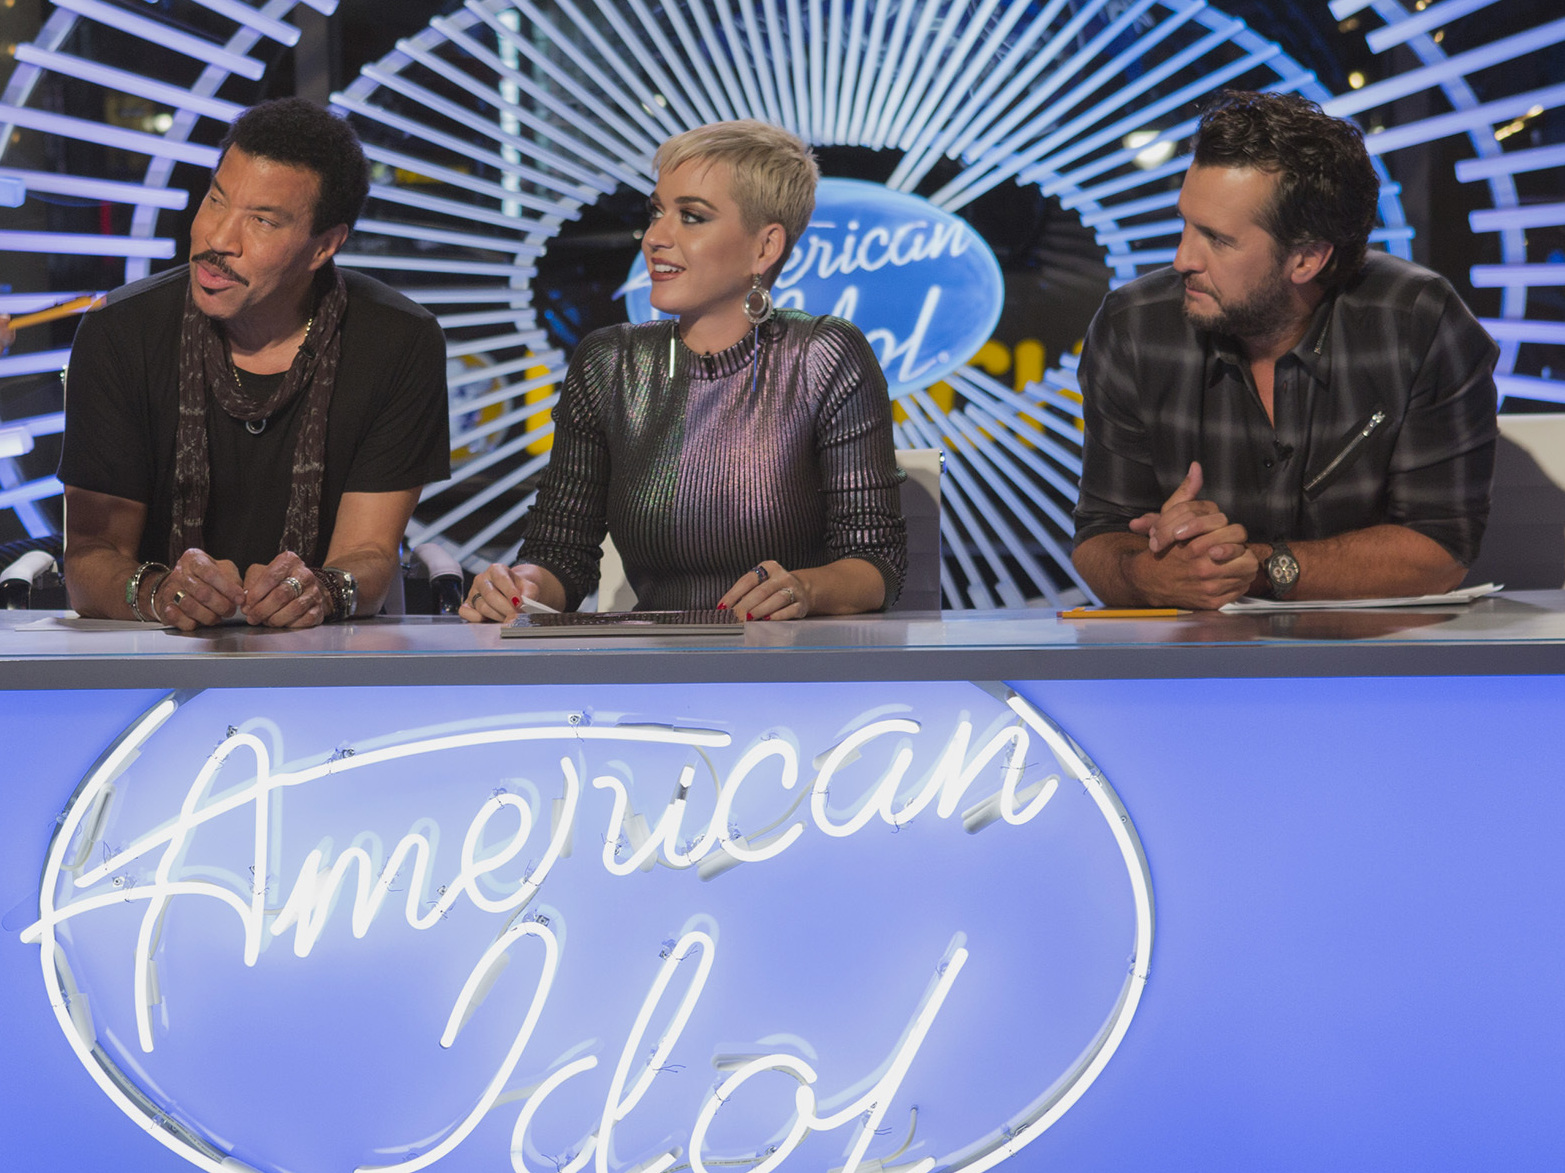 Ashland Native to Appear on American Idol